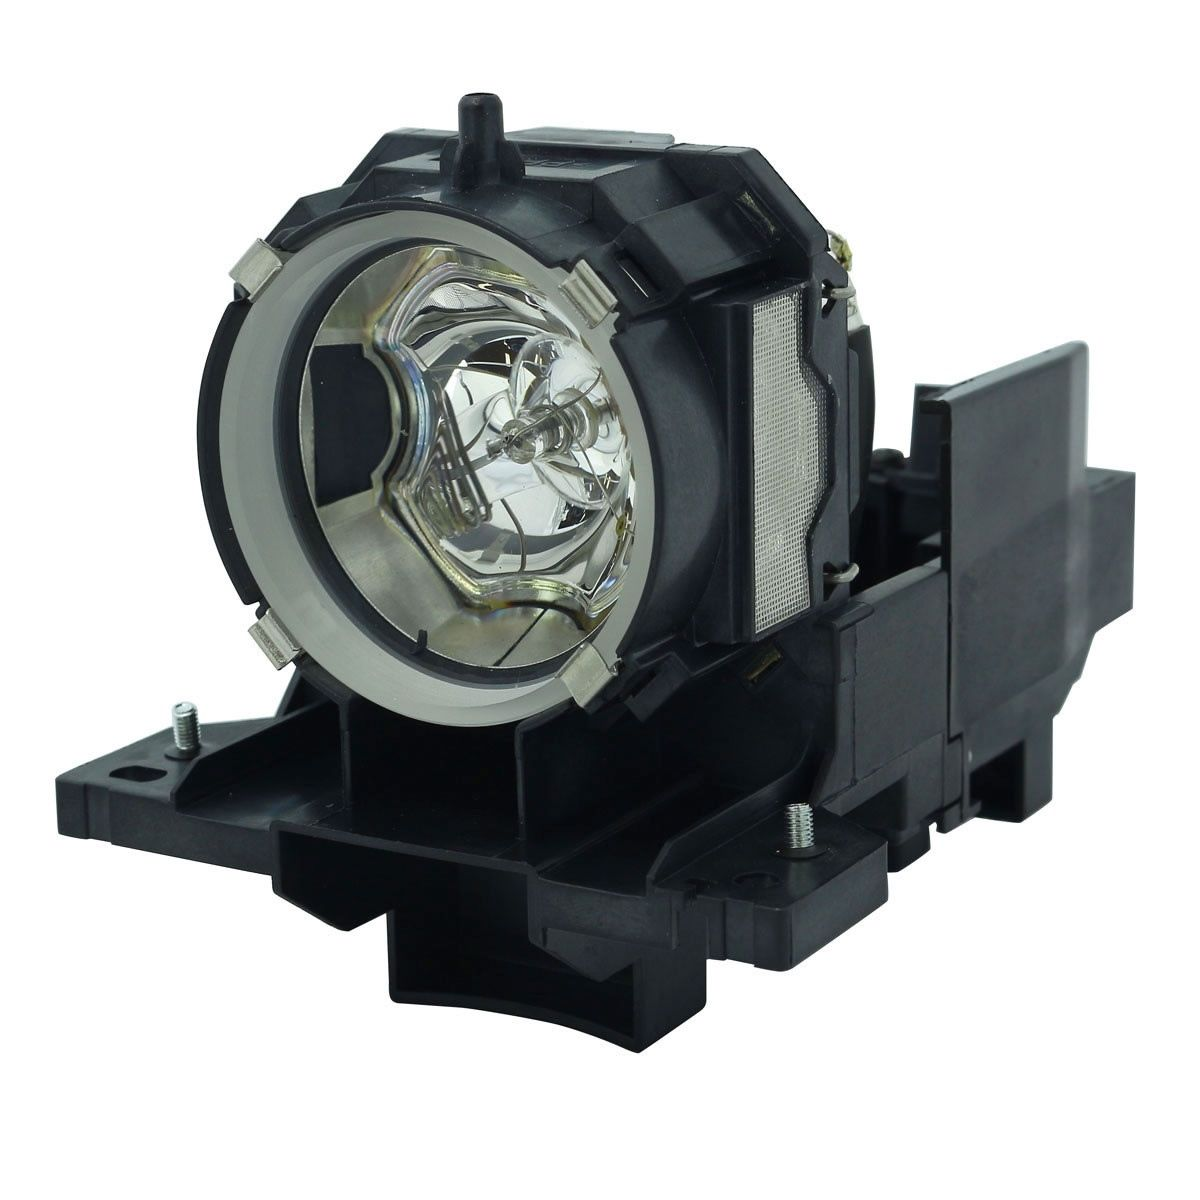 Projector Lamp Bulb DT00873 DT-00873 for HITACHI CP-X809 CP-SX635 CP-WX625 CP-WX625W CP-WX645 with housing dt01021 projector lamp bulb for hitachi cp x3010 cp x3010n cp x3010z cp x3011 cp x3011n